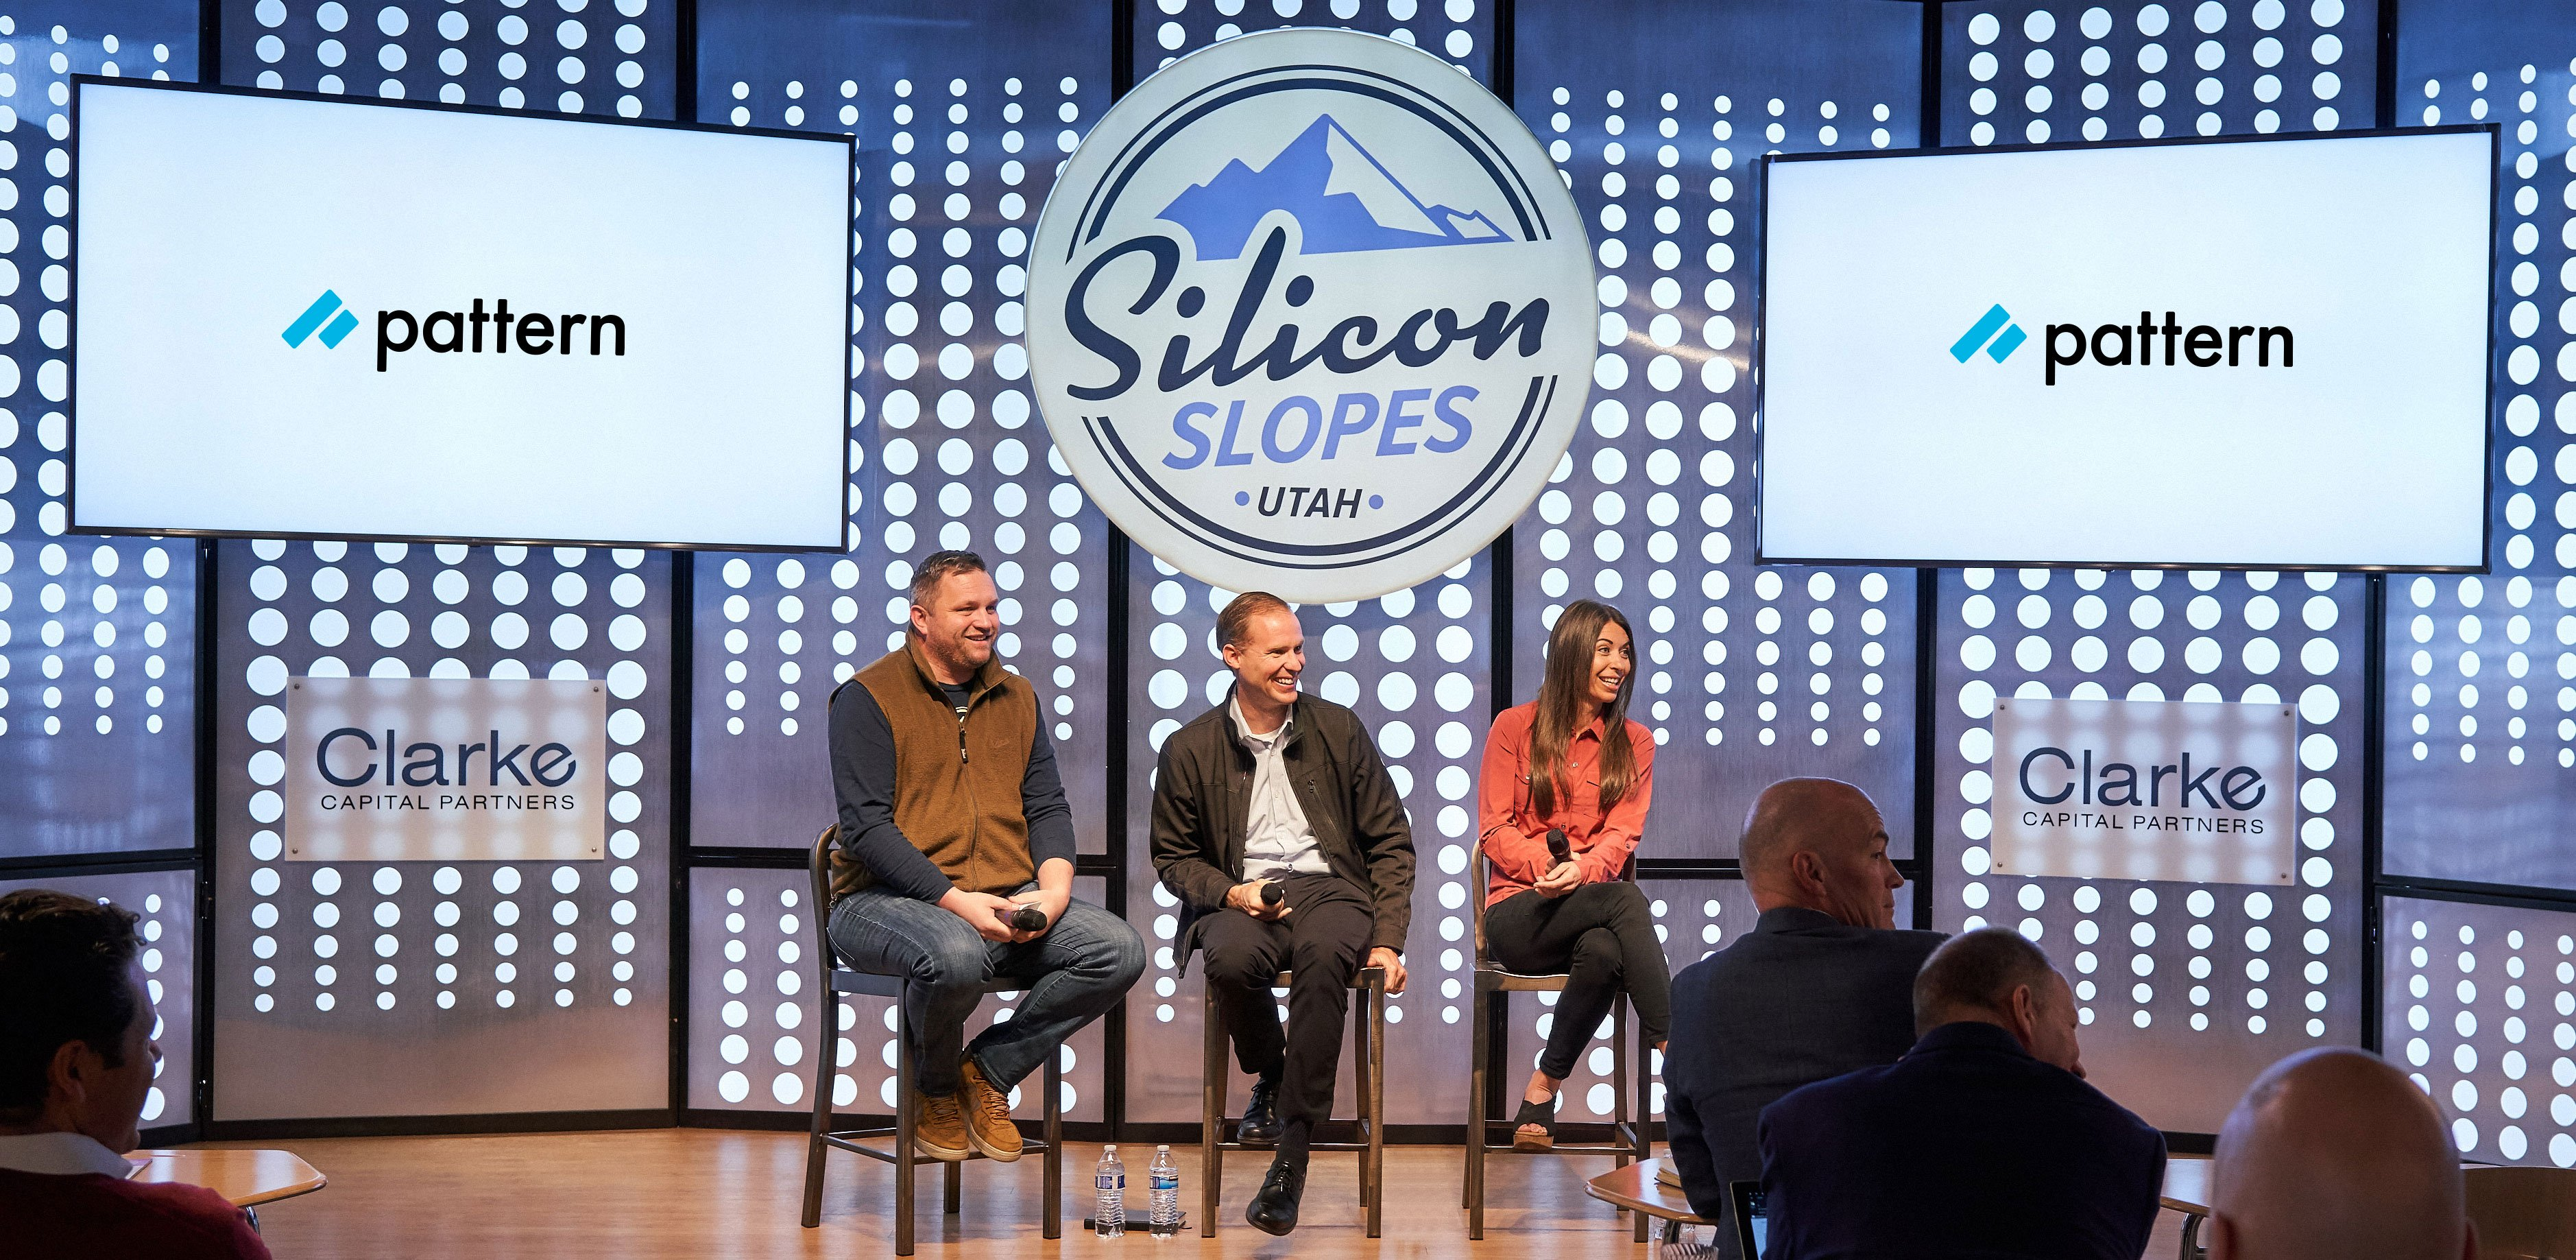 Pattern Founders, David Wright, Melania Alder, Silicon Slopes